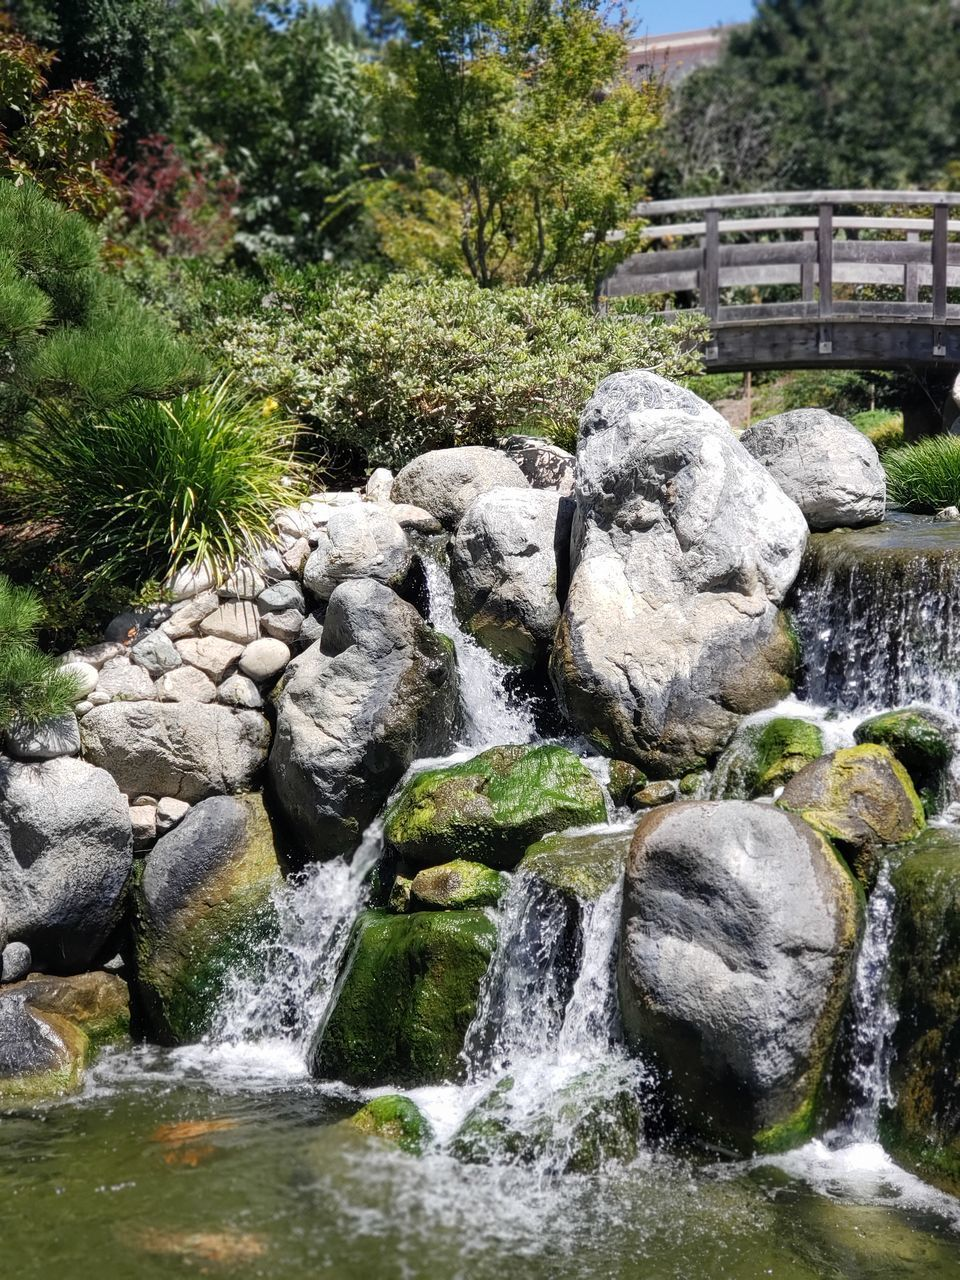 VIEW OF WATERFALL ALONG ROCKS AND PLANTS